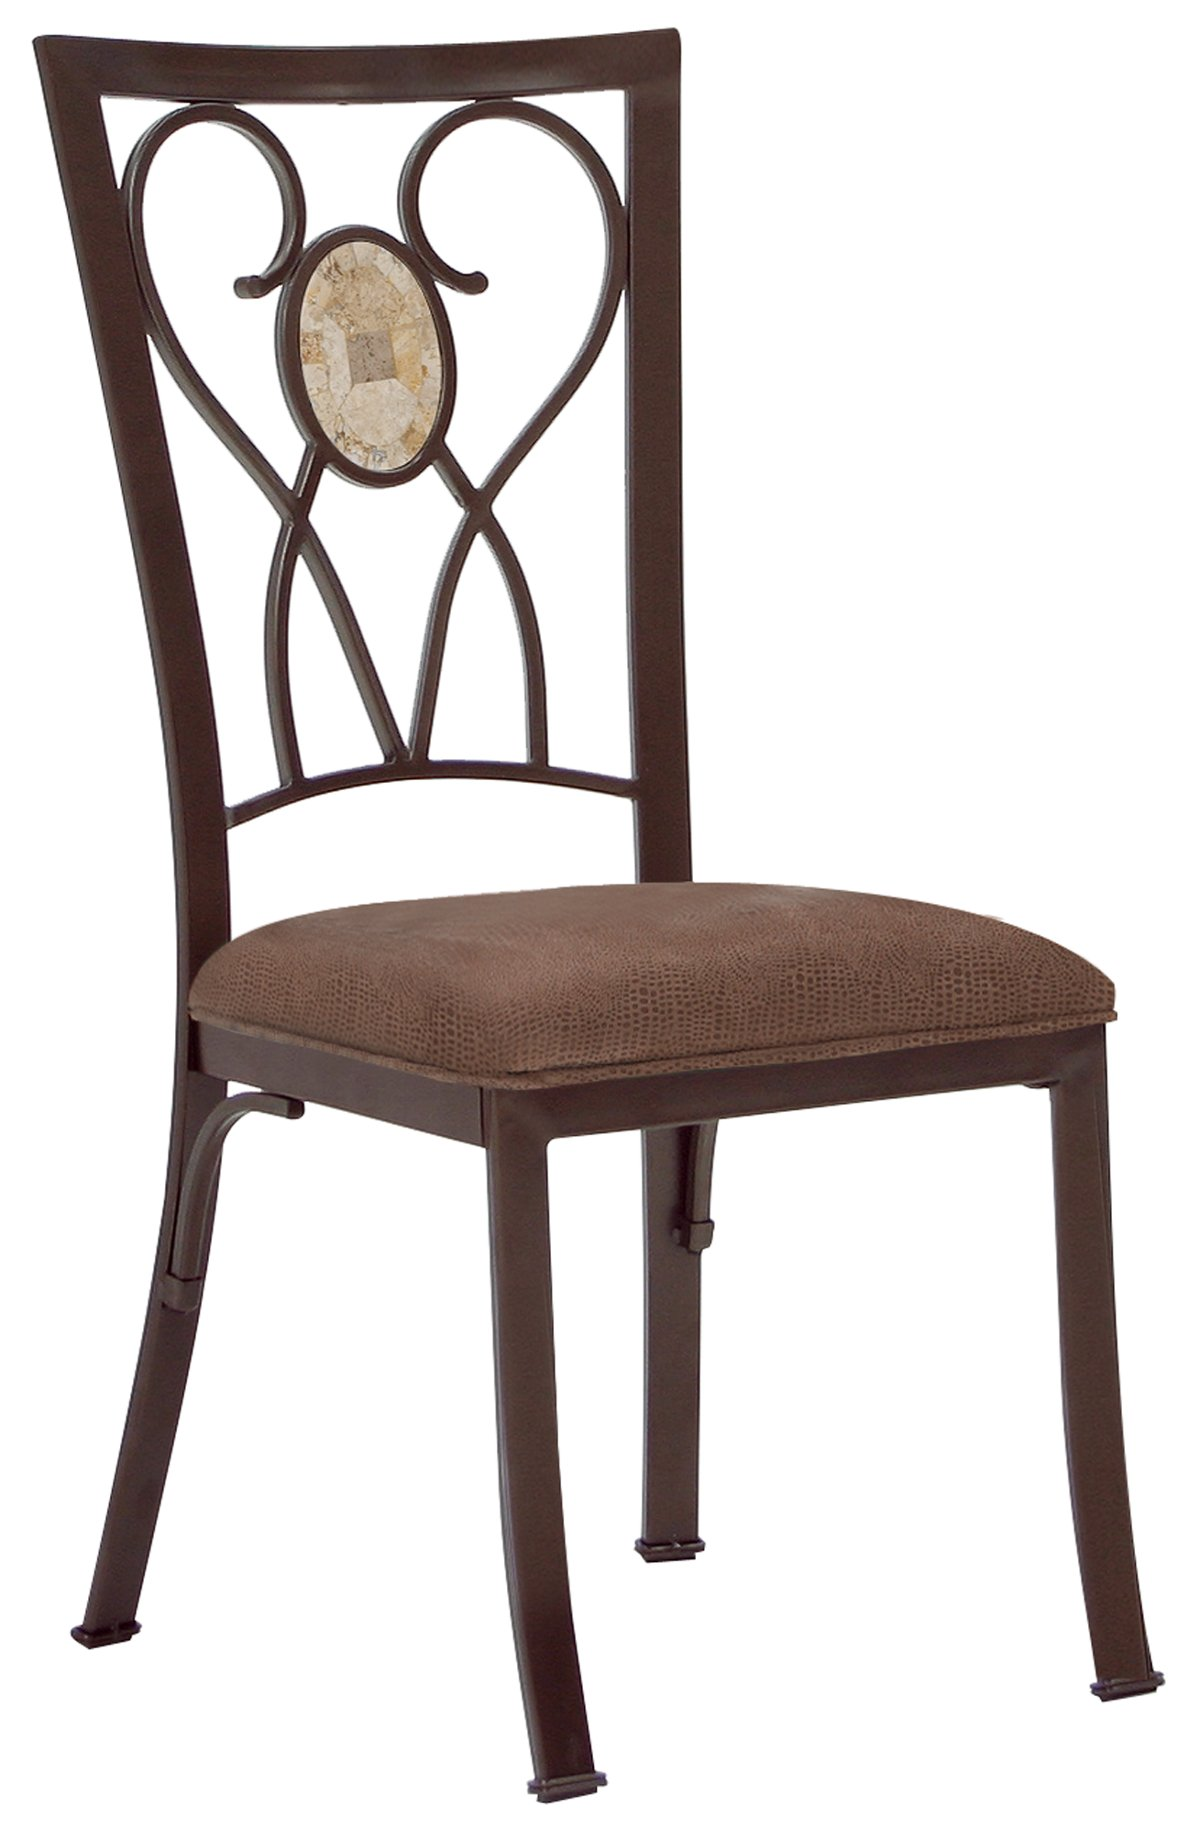 hb brookside round stone table 4 chairs